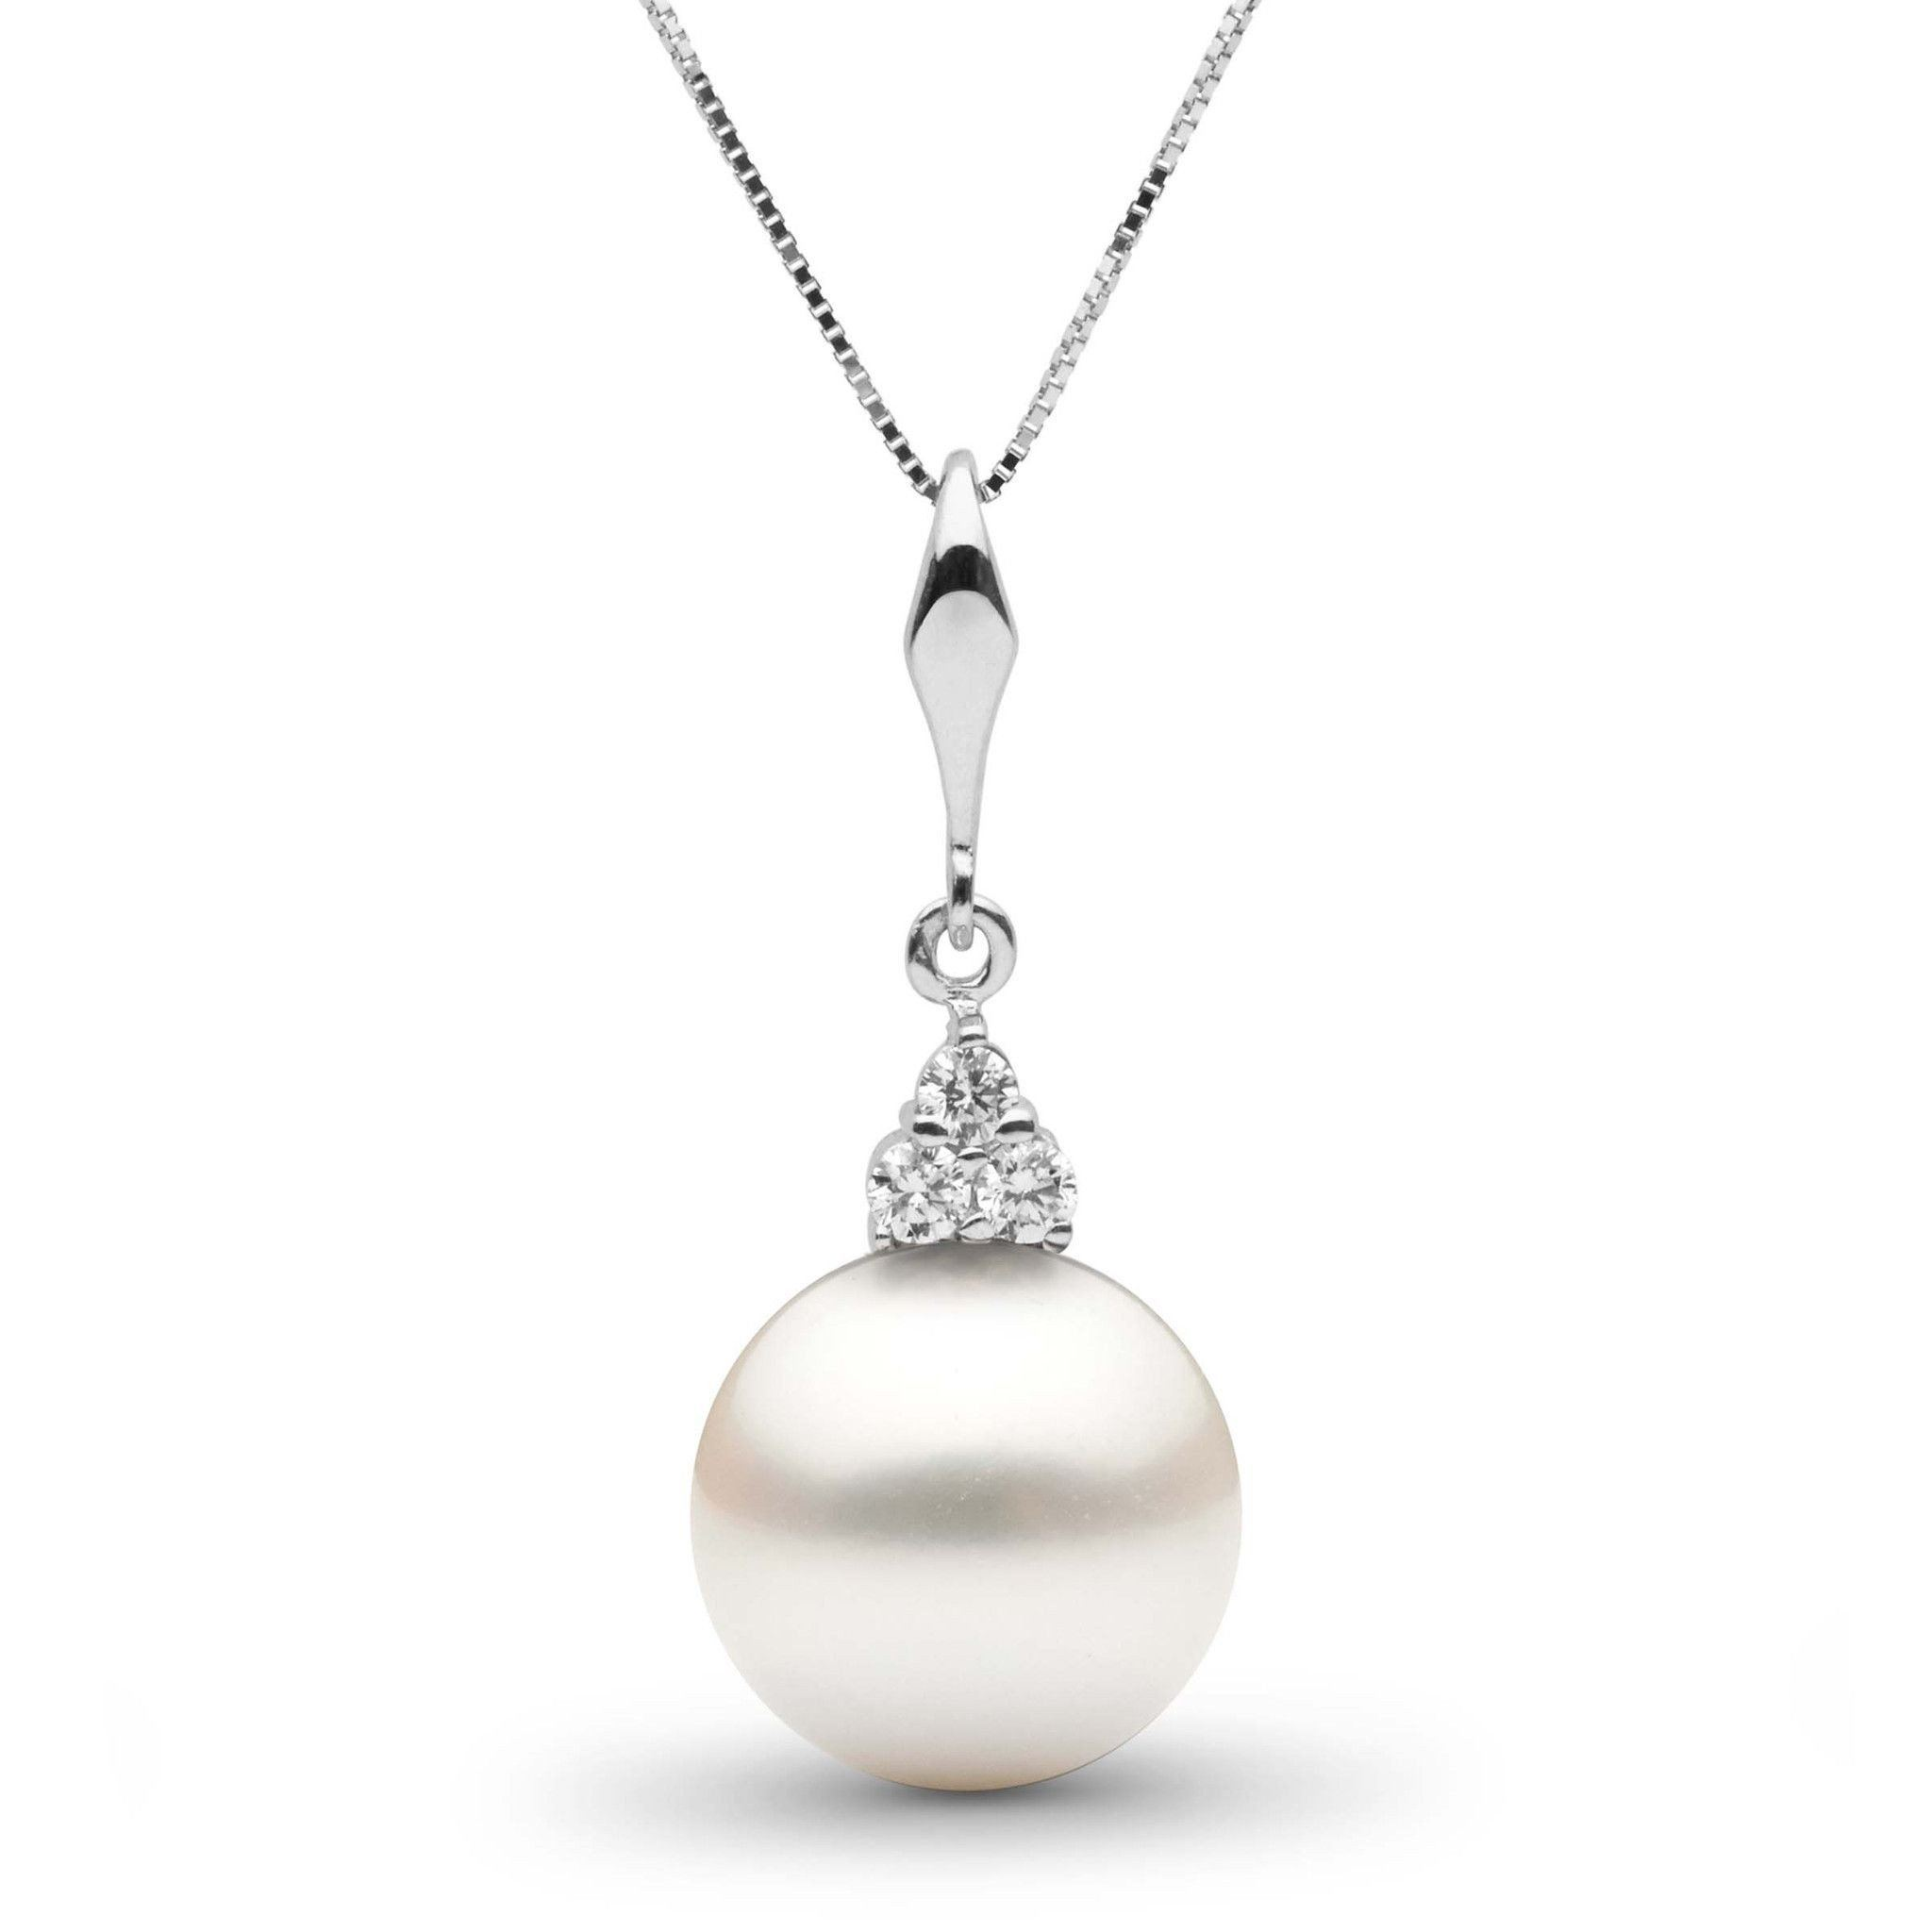 Always Collection White 11.0-12.0 mm South Sea Pearl and Diamond Pendant